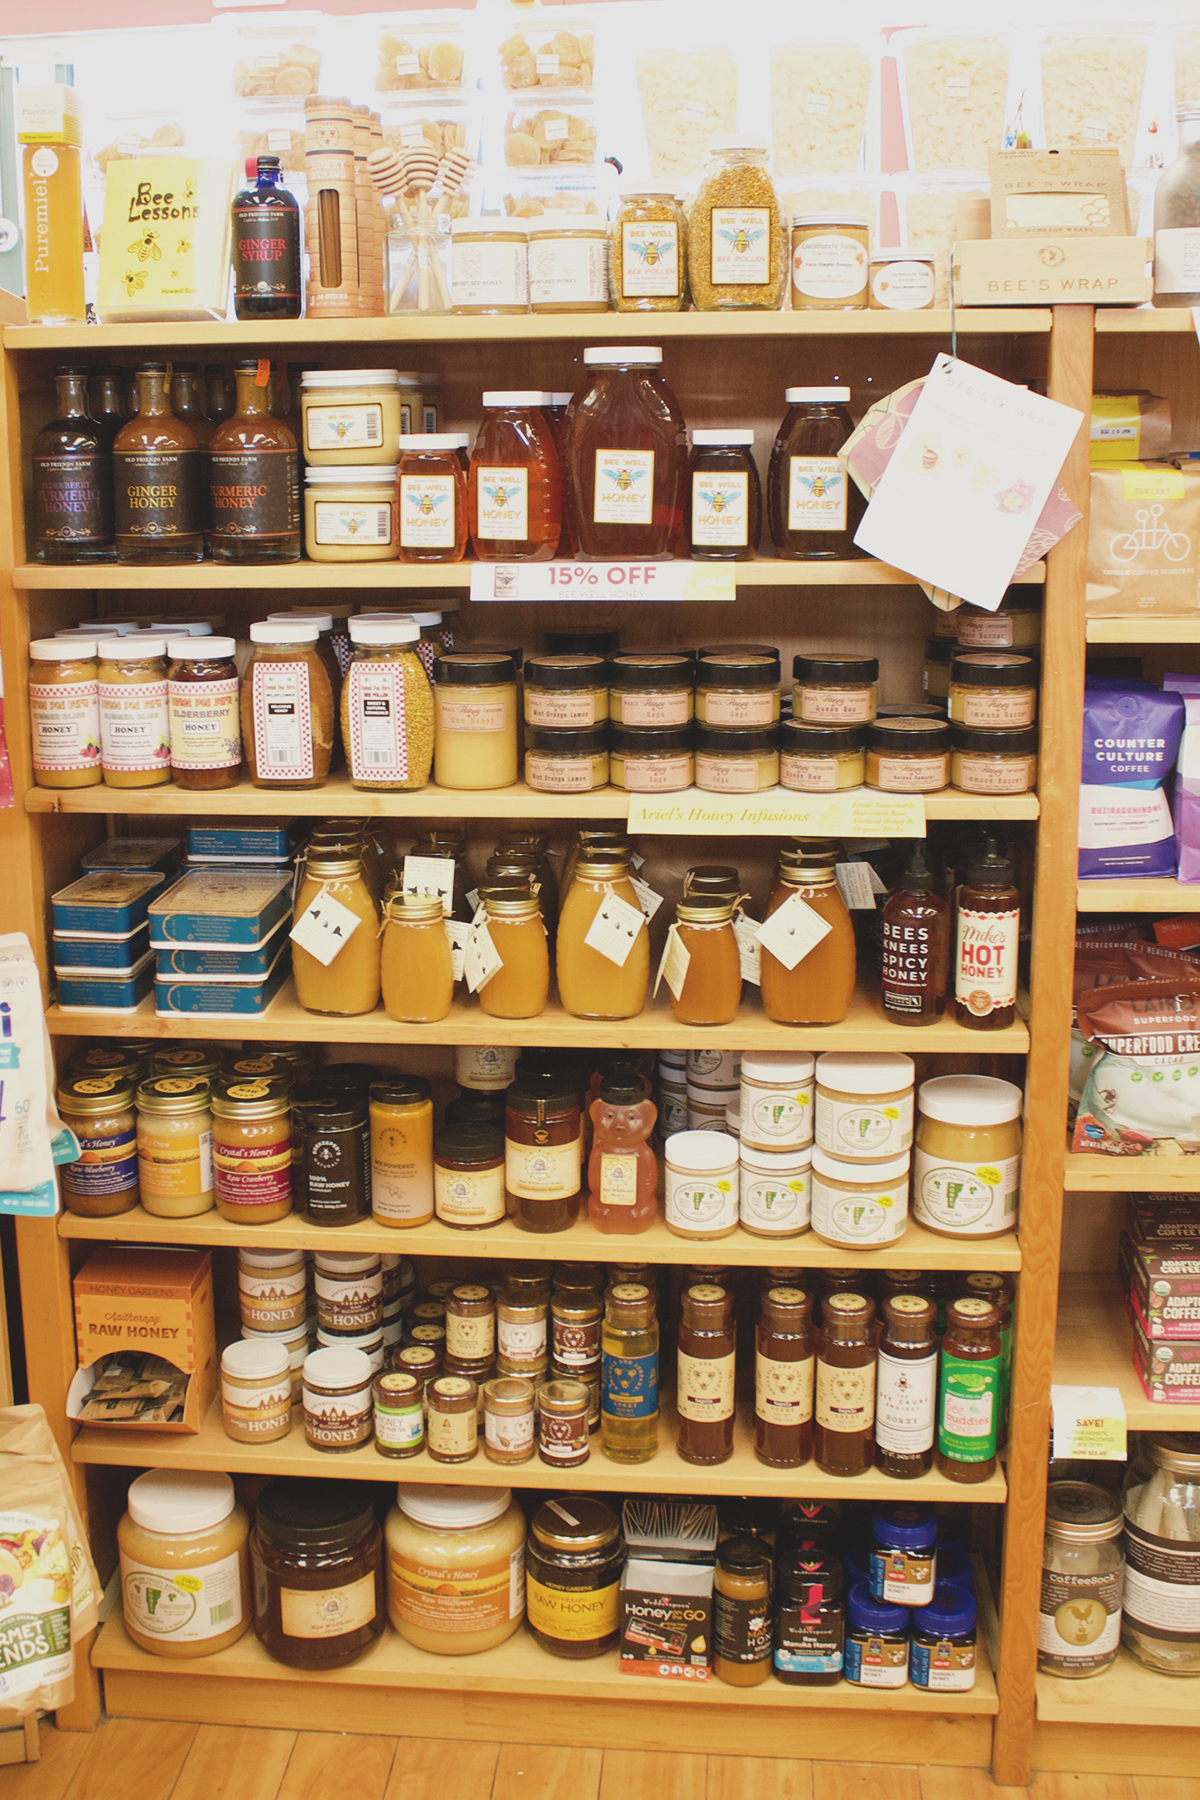 5 Places To Sell Herbal Products   Herbal Academy   Does selling herbal products intimidate you, or do you simply not know where to start? Here's 5 outlets you can use to sell herbal products successfully!